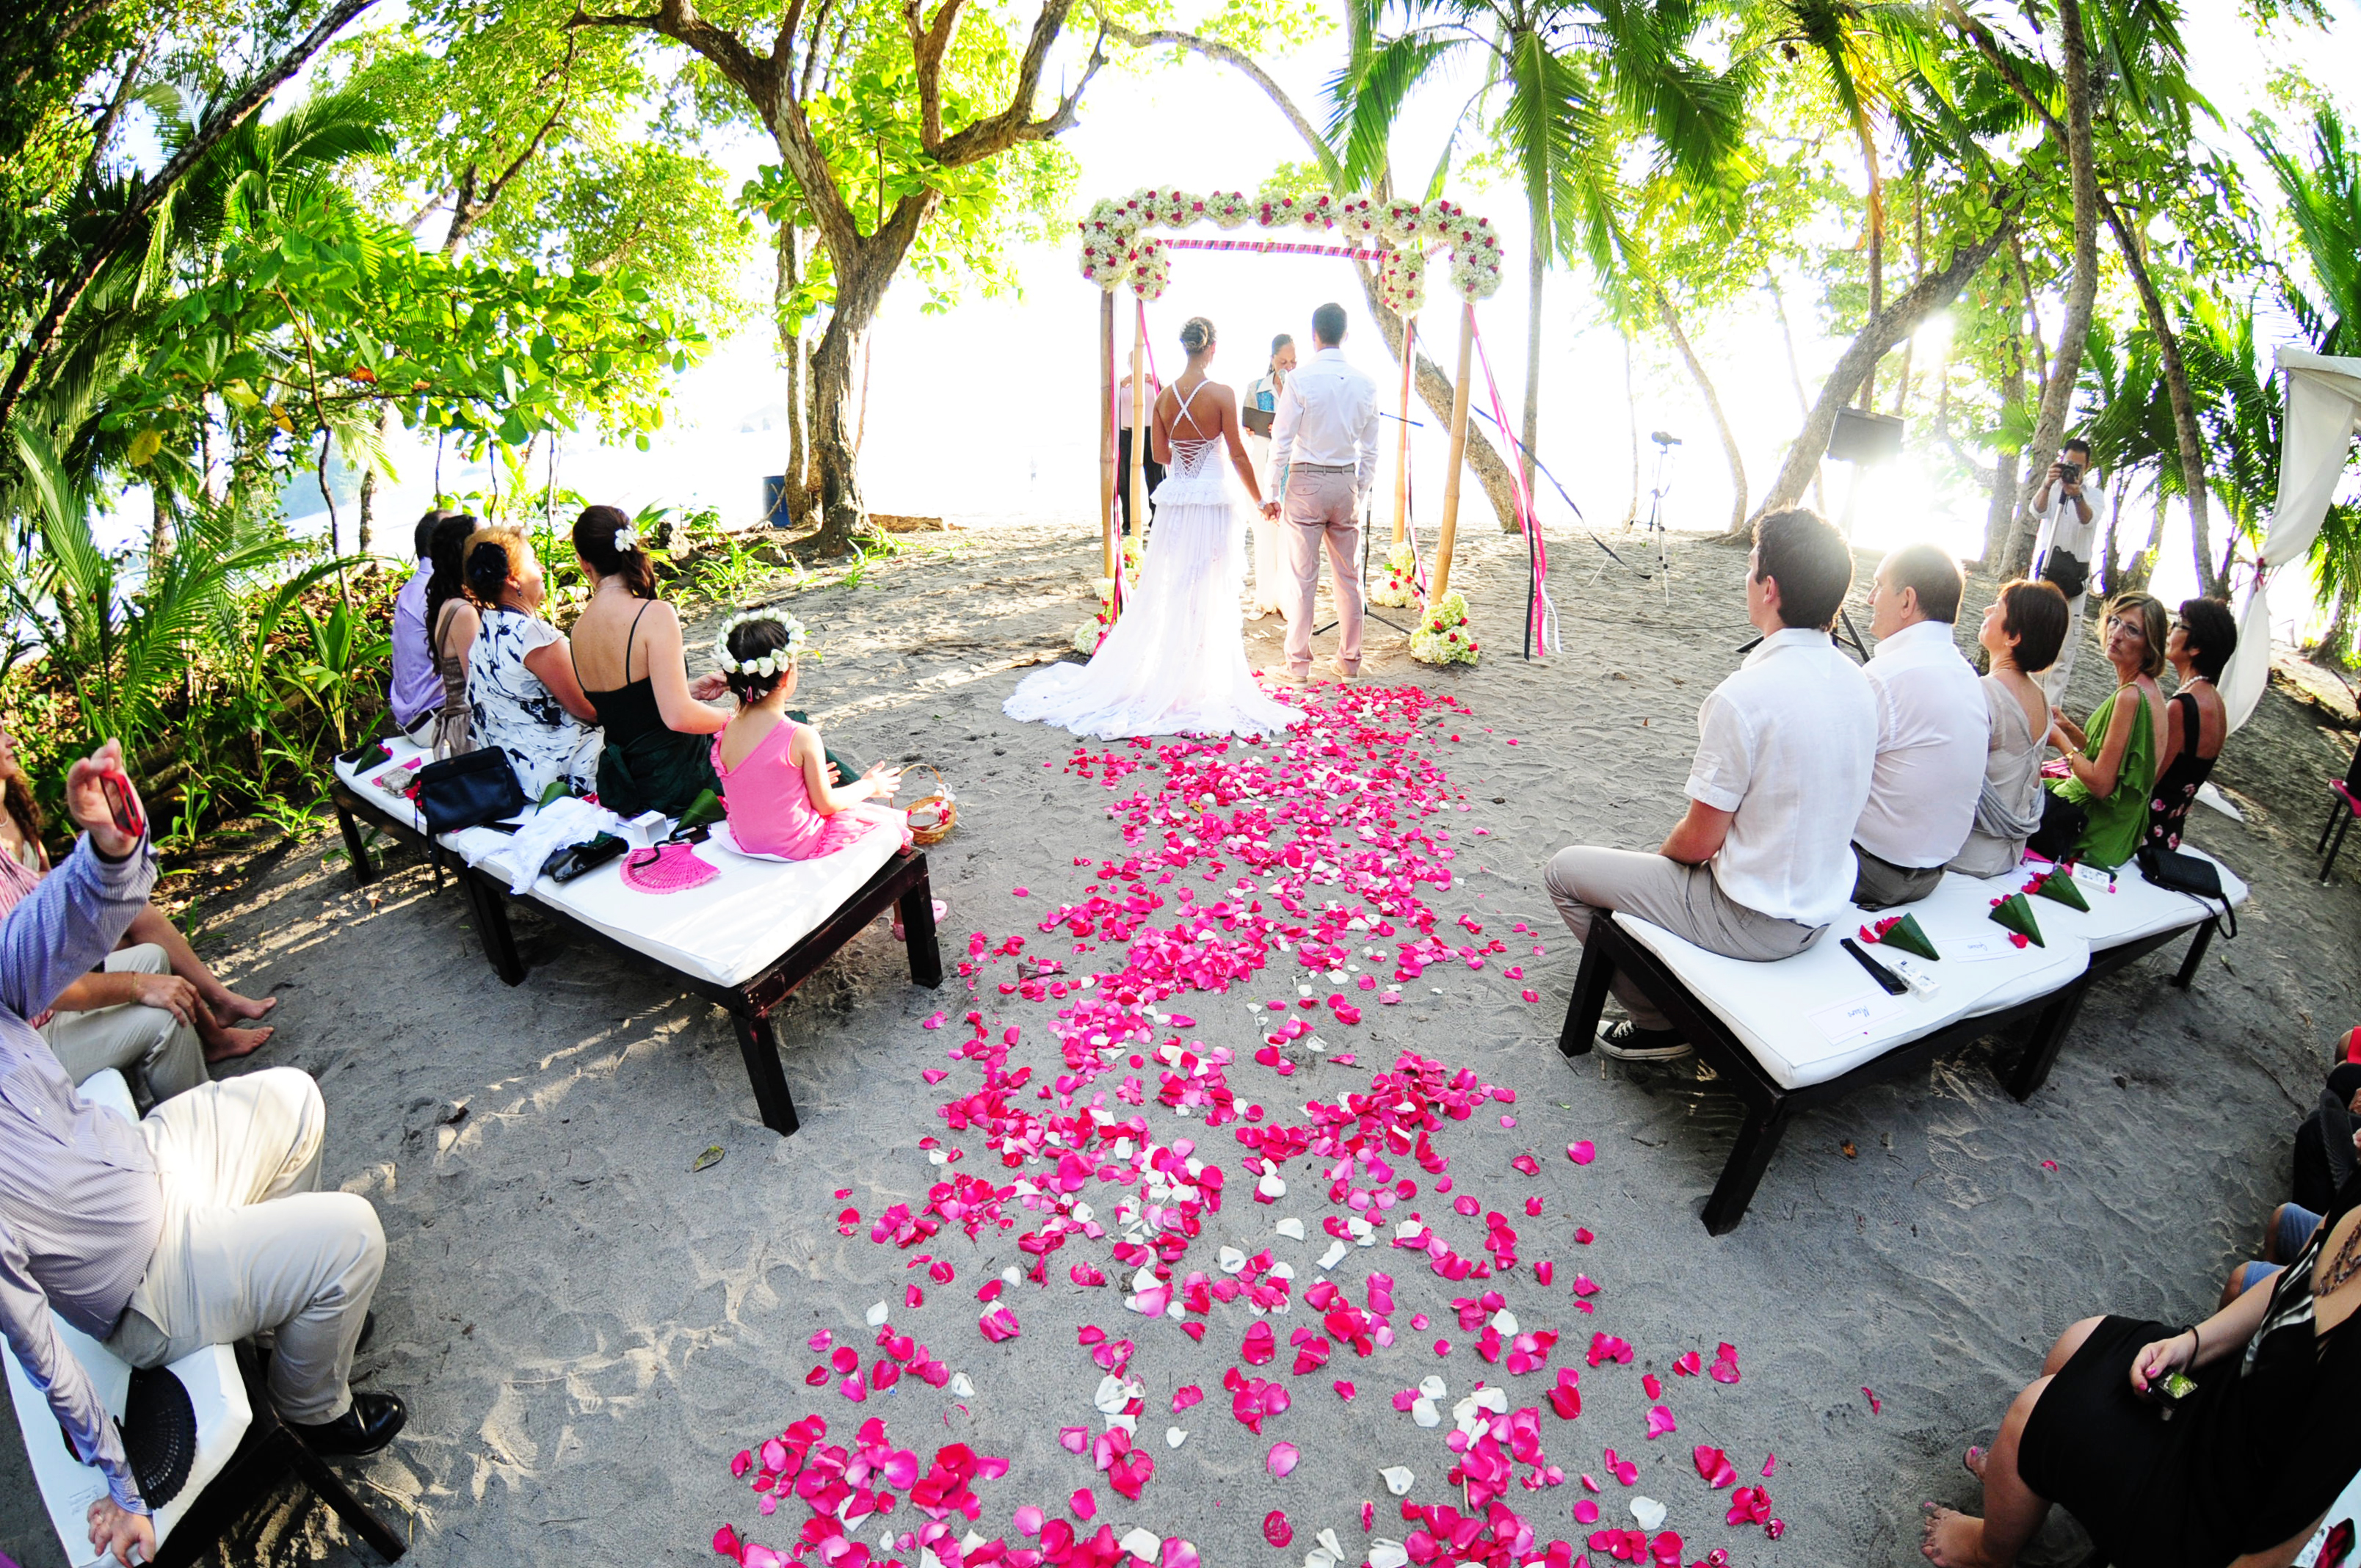 Mansion Backyard Wedding : The backyard of Discovery House is on the beach under a grove of trees